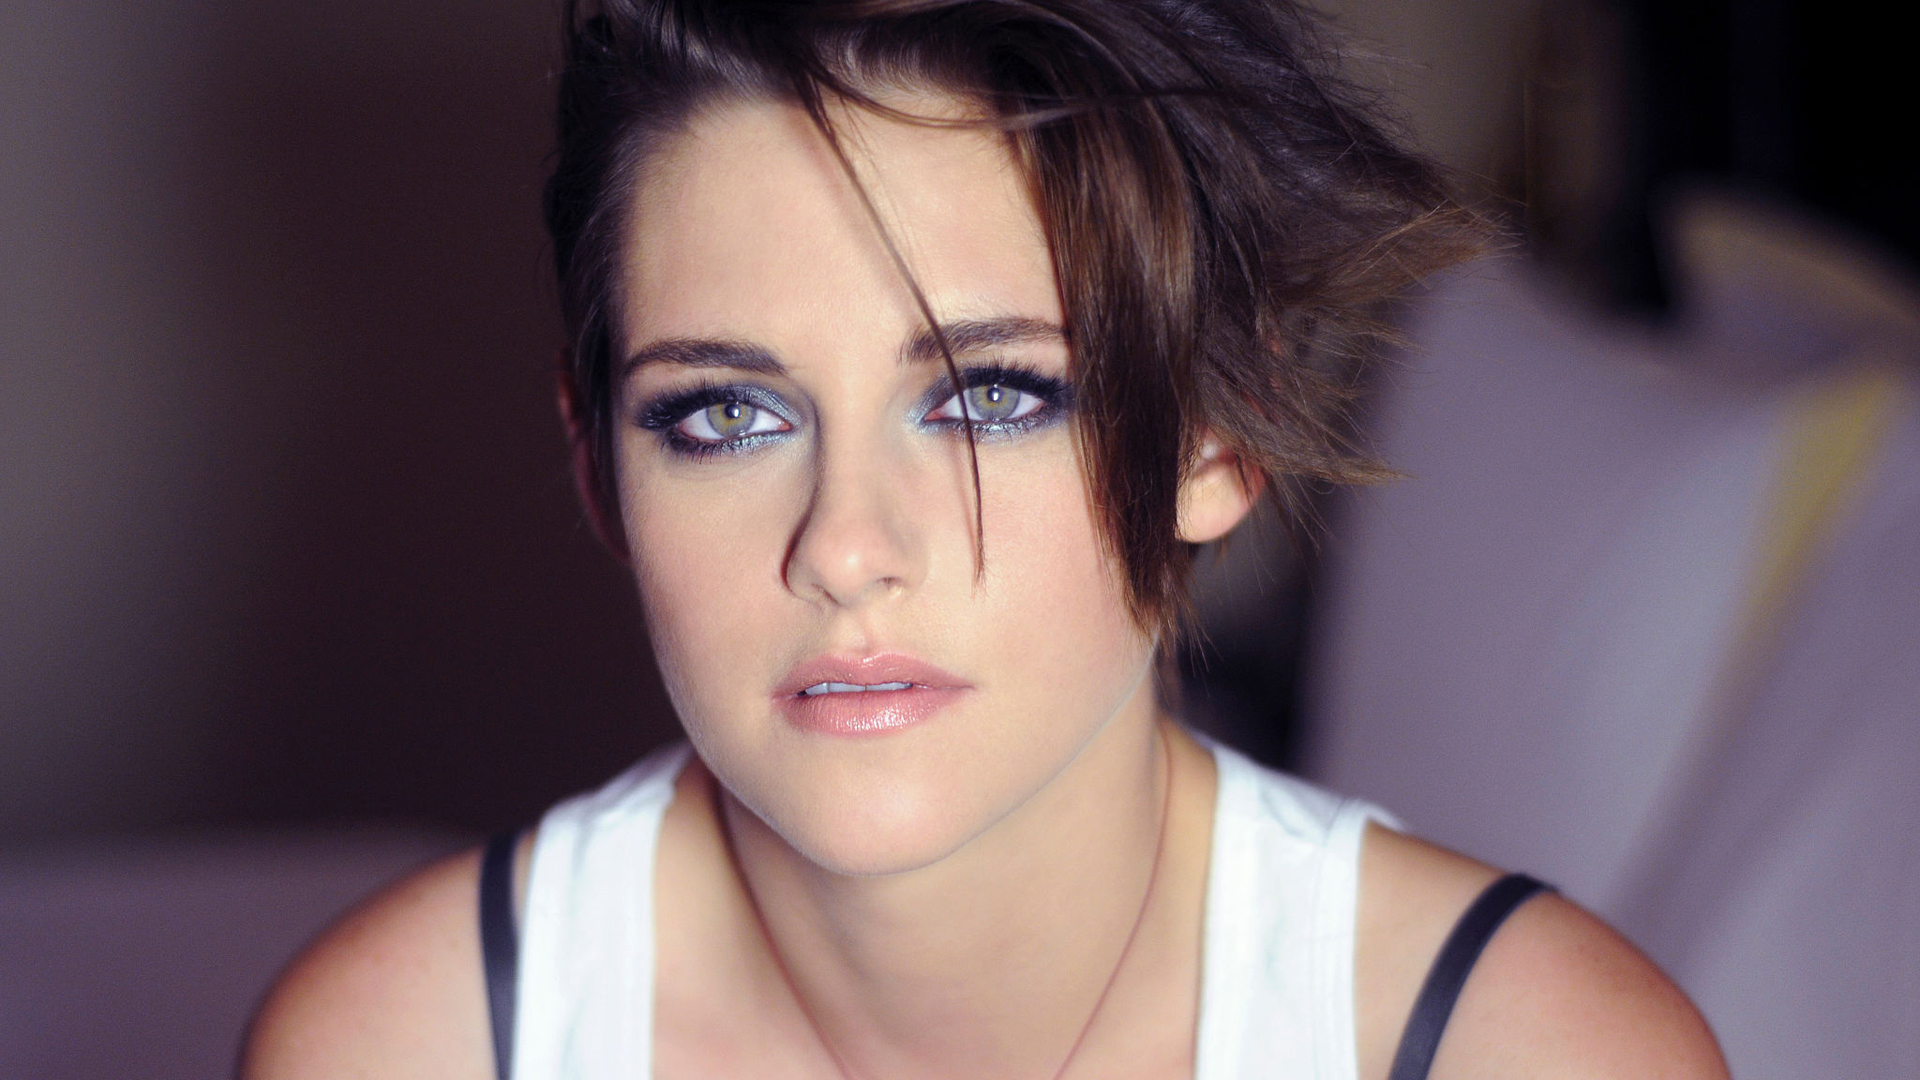 kristen stewart hot hd wallpaper 2548